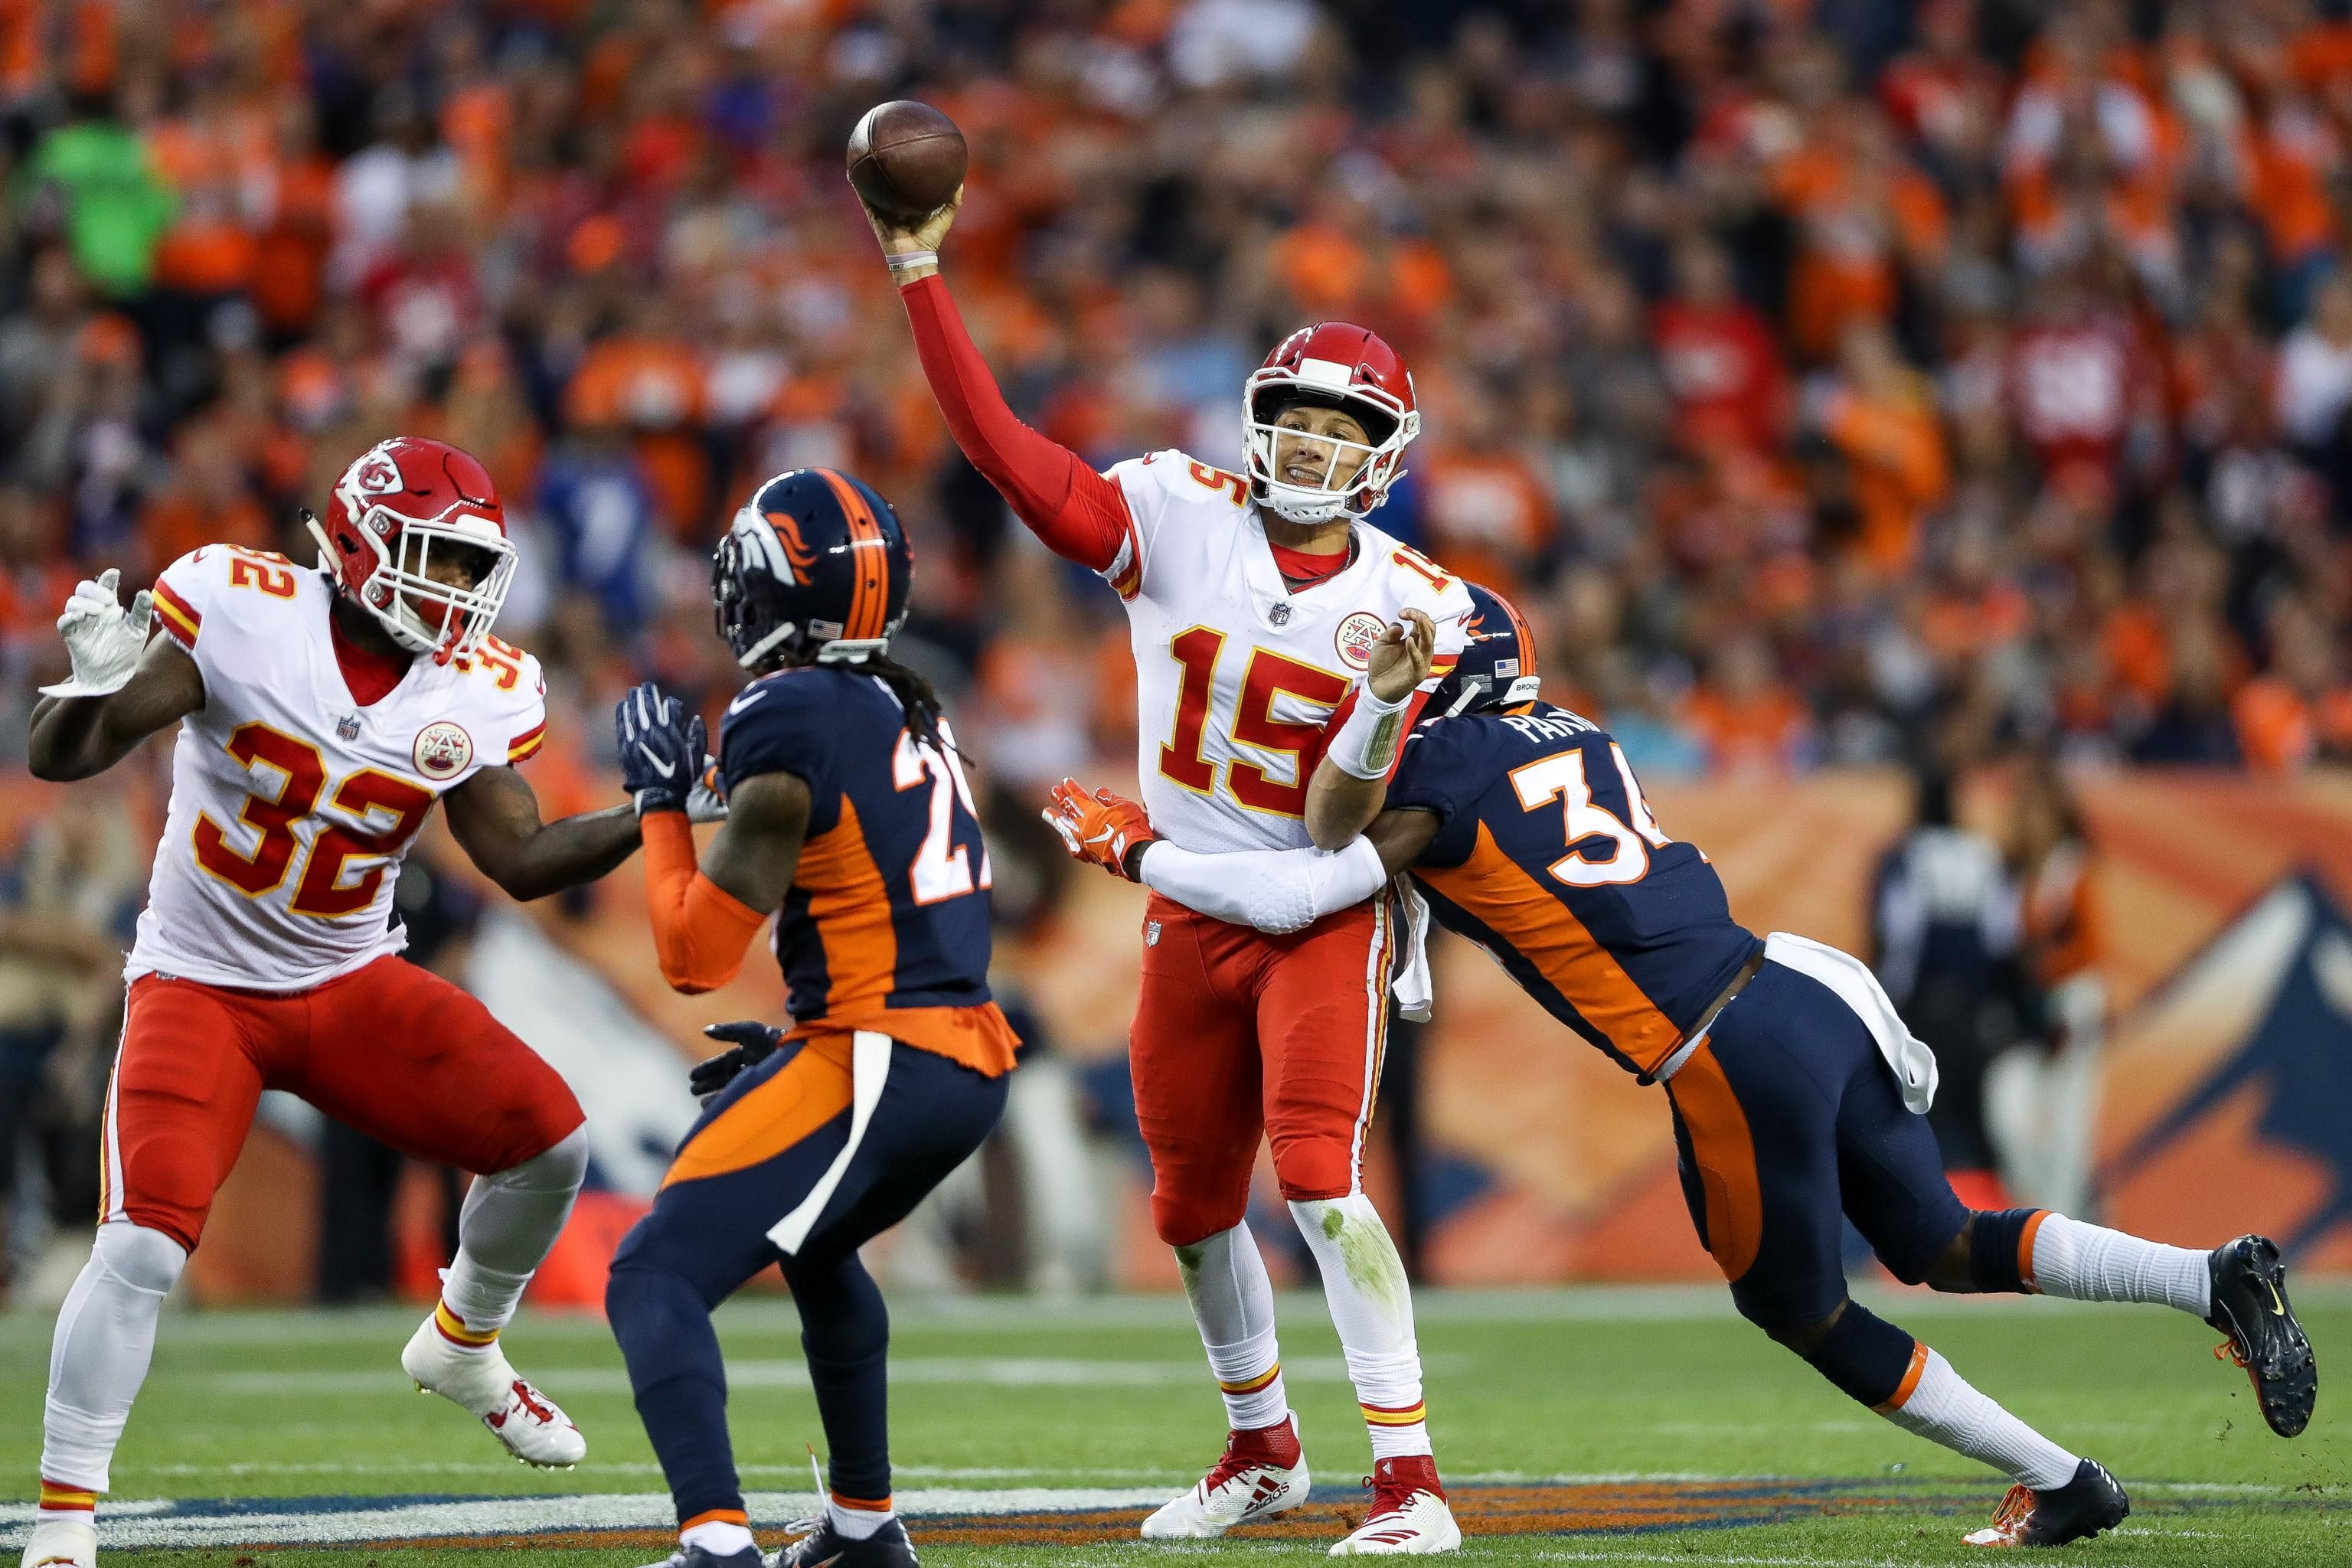 Patrick Mahomes Engineers 10 Point 4th Quarter Comeback As Chiefs Beat Broncos Chief Football Helmets Kansas City Chiefs